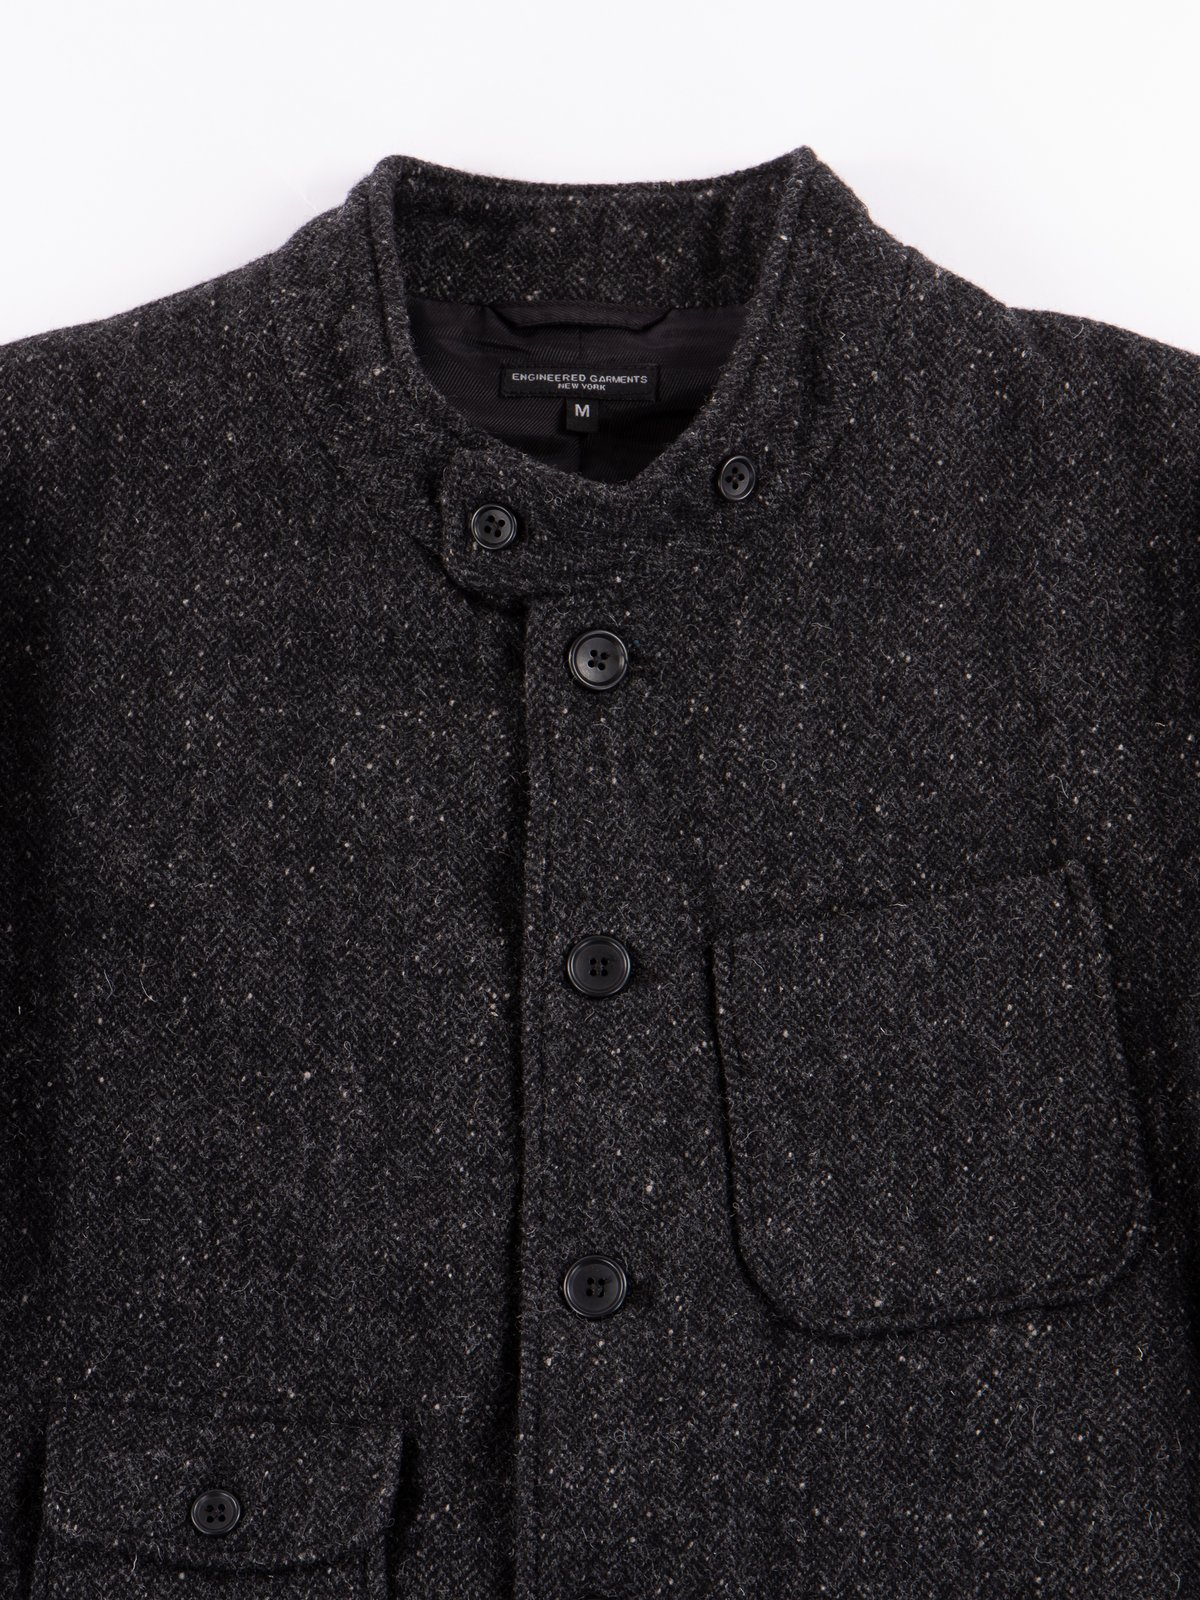 Charcoal HB Tweed Grim Jacket - Image 4